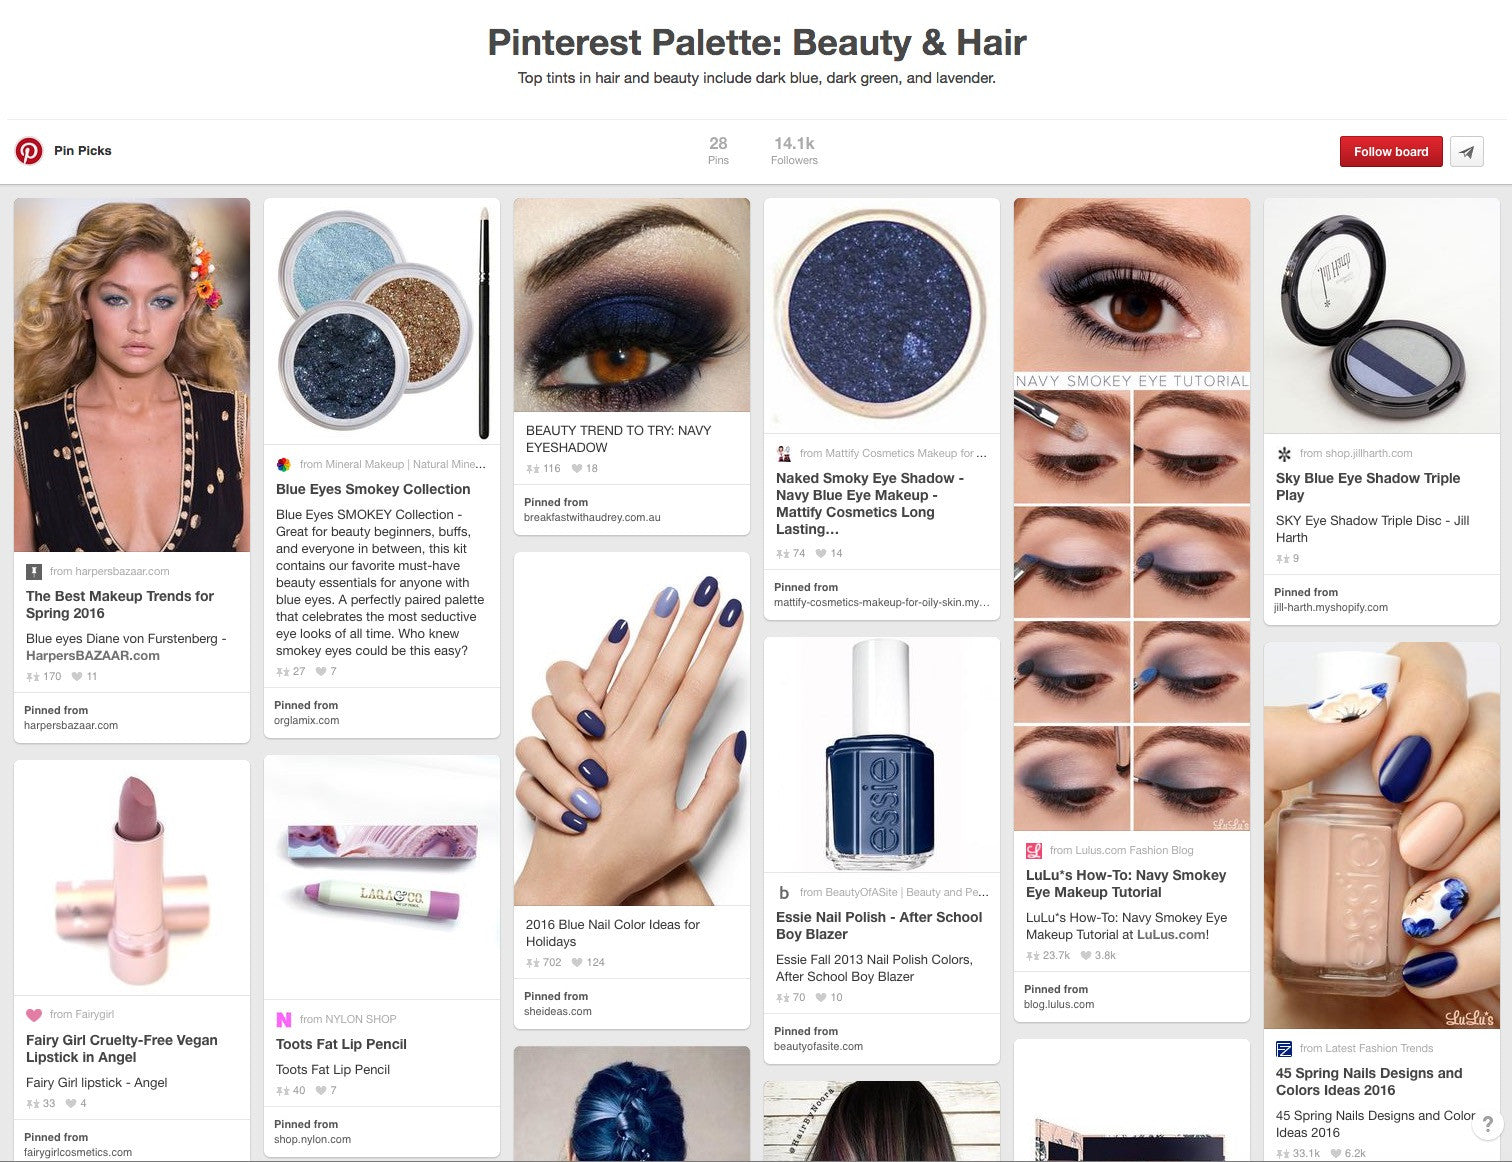 Beauty Trend report: What's popular on Pinterest this month